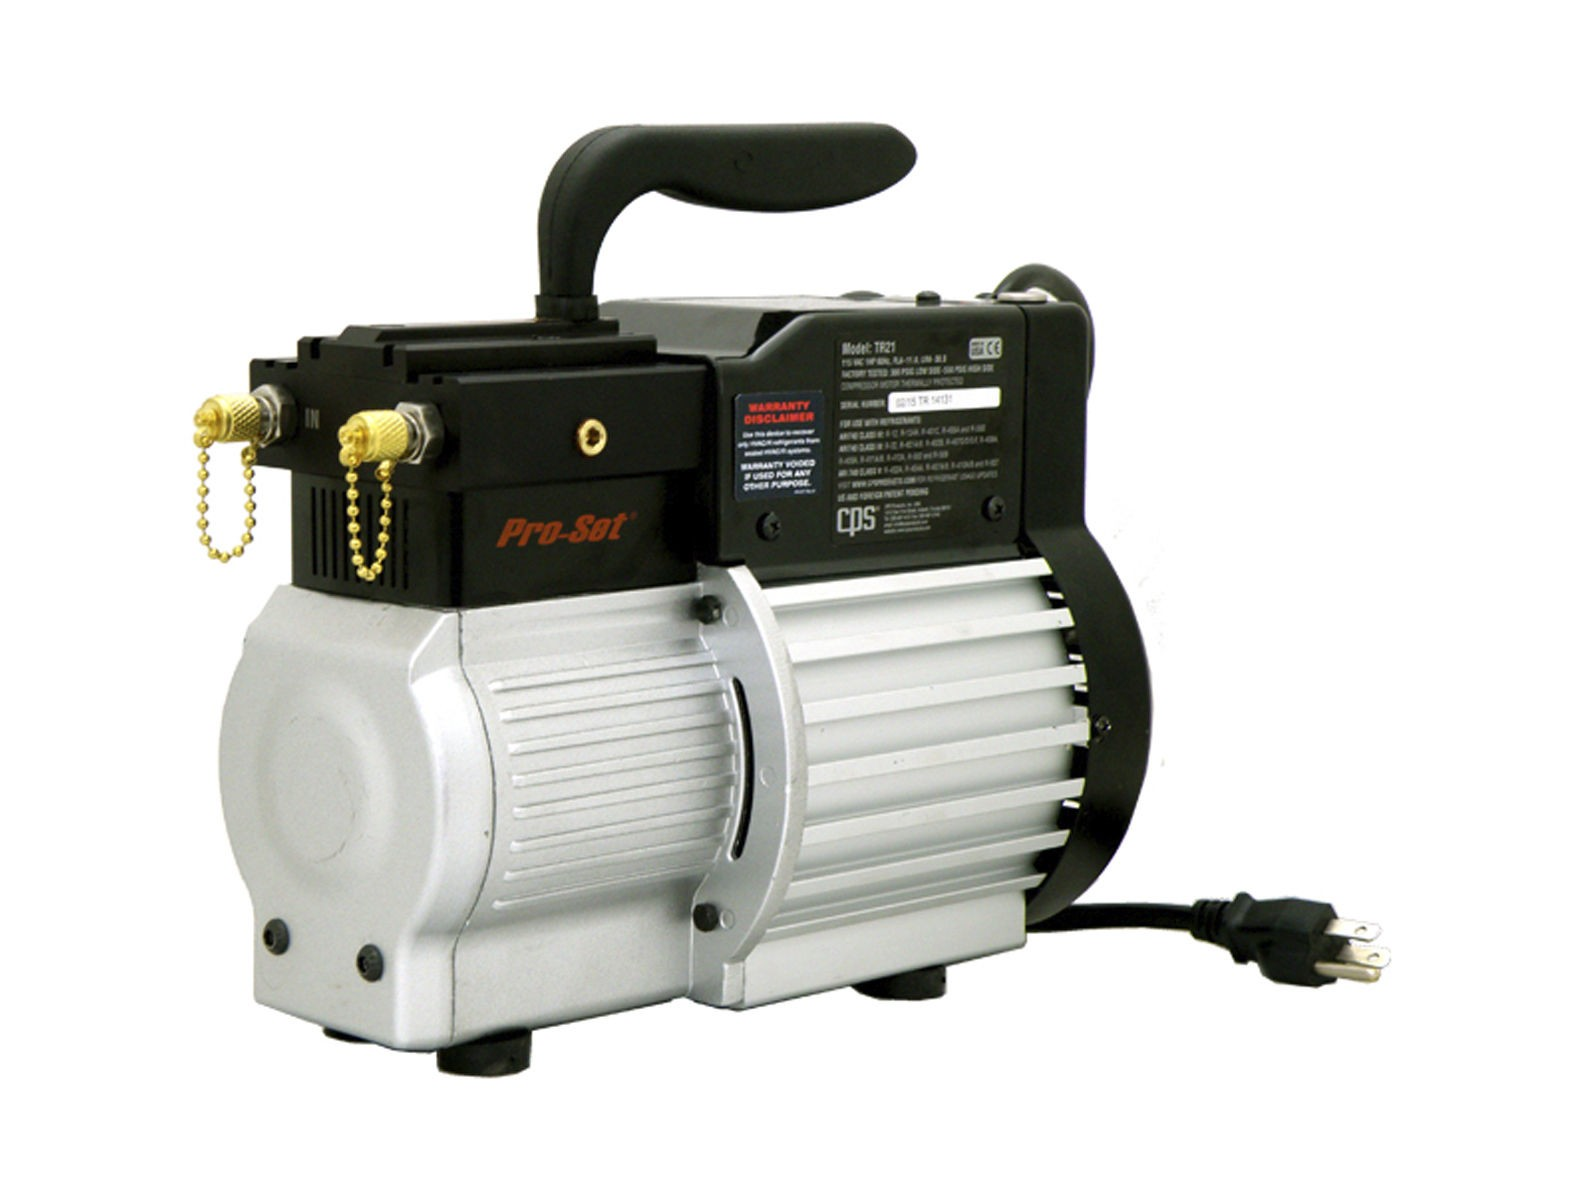 Ignition proof refrigerant recovery machines: CPS introduces another addition to the Pro-Set recovery line-up with the TRS21